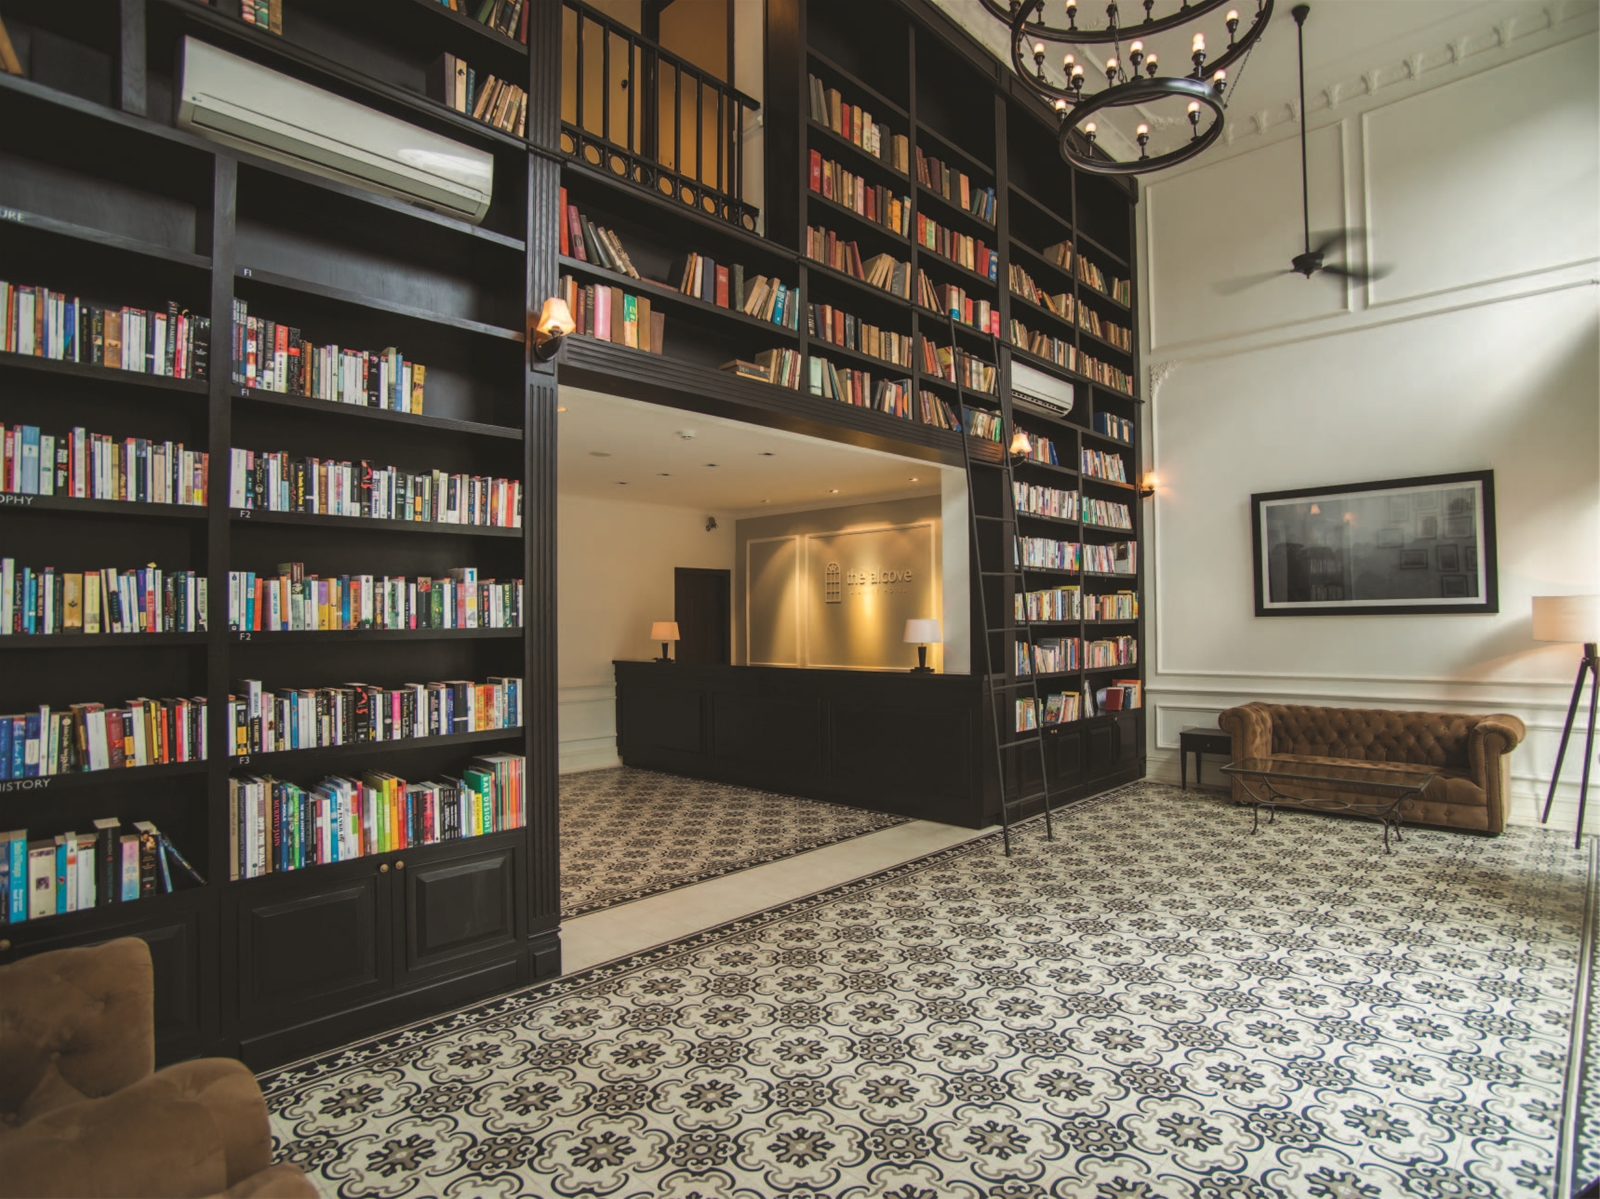 Image from The Alcove Library Hotel